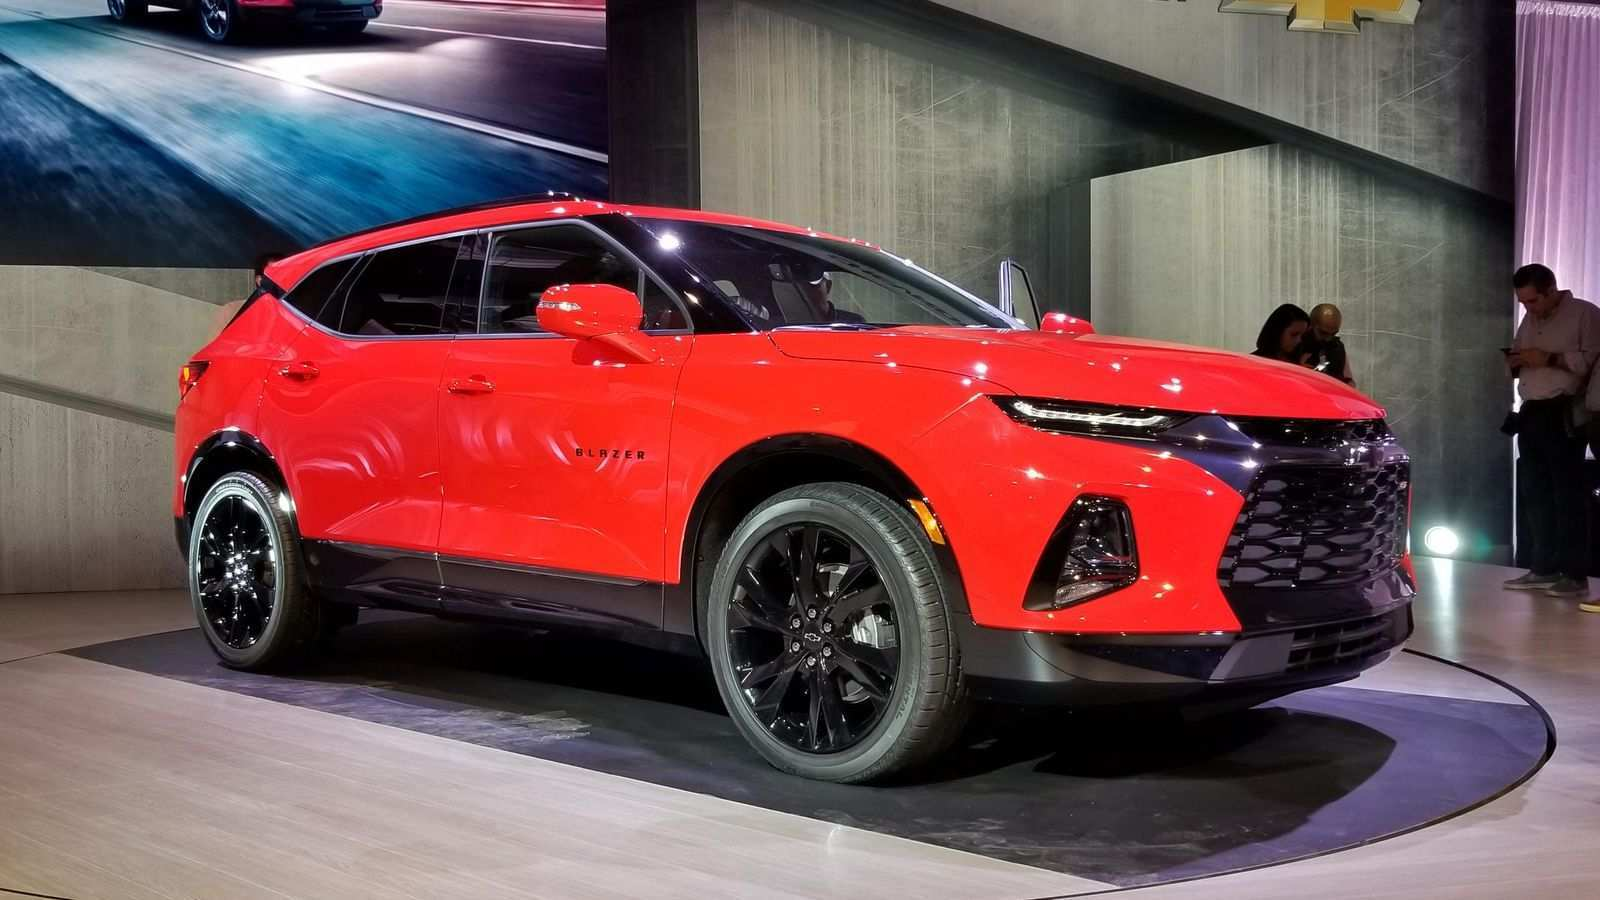 49 New 2019 Chevy K5 Blazer Prices